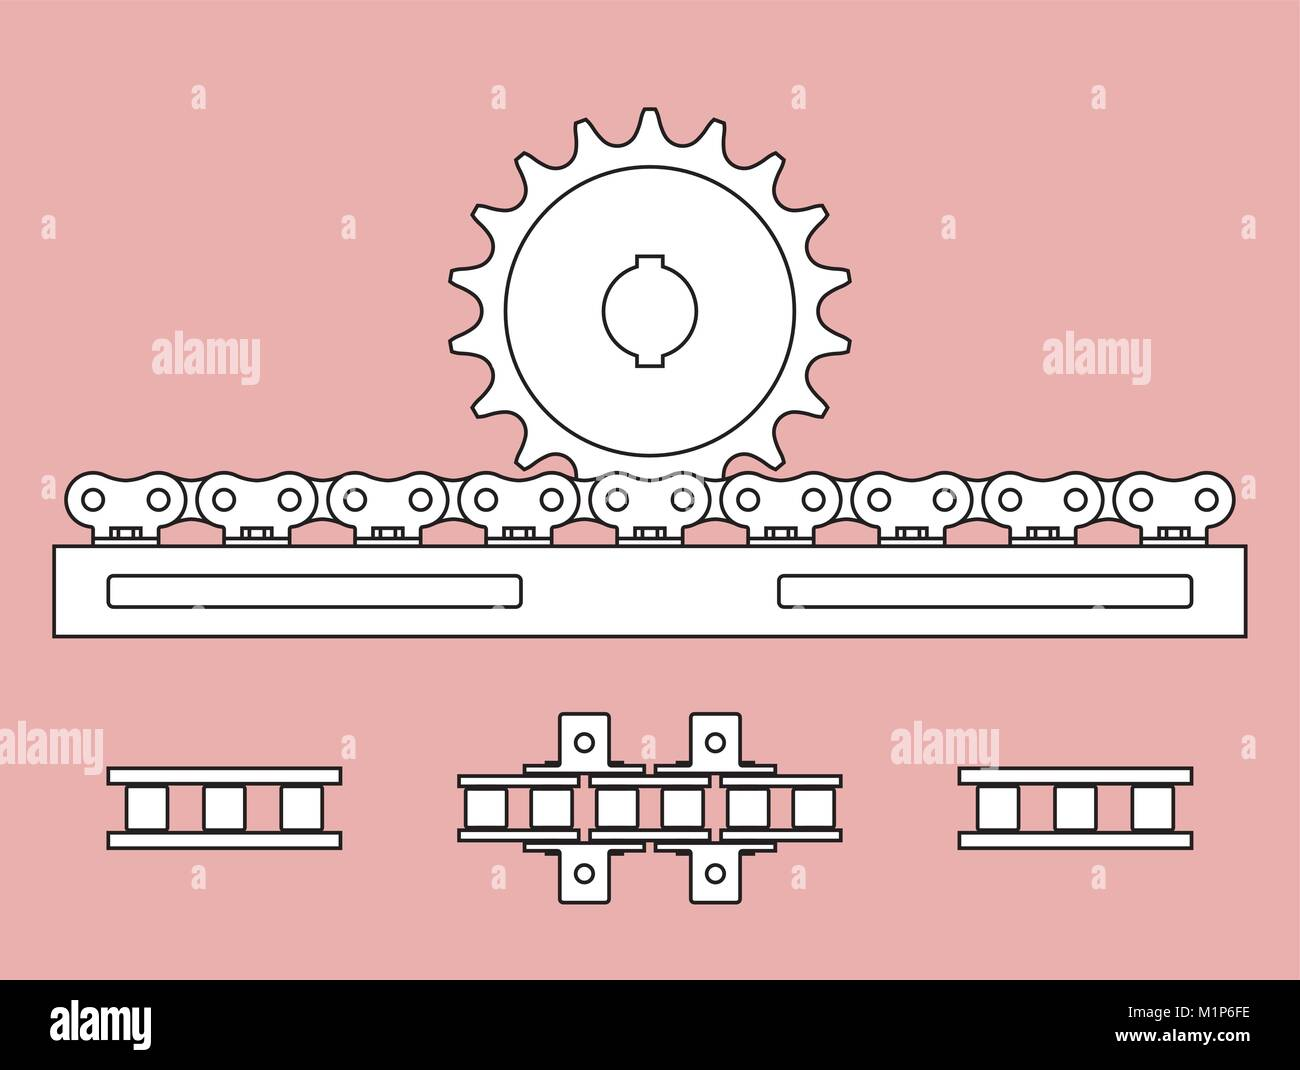 hight resolution of sprocket and chain rack on transmission of mechanical power stock vector